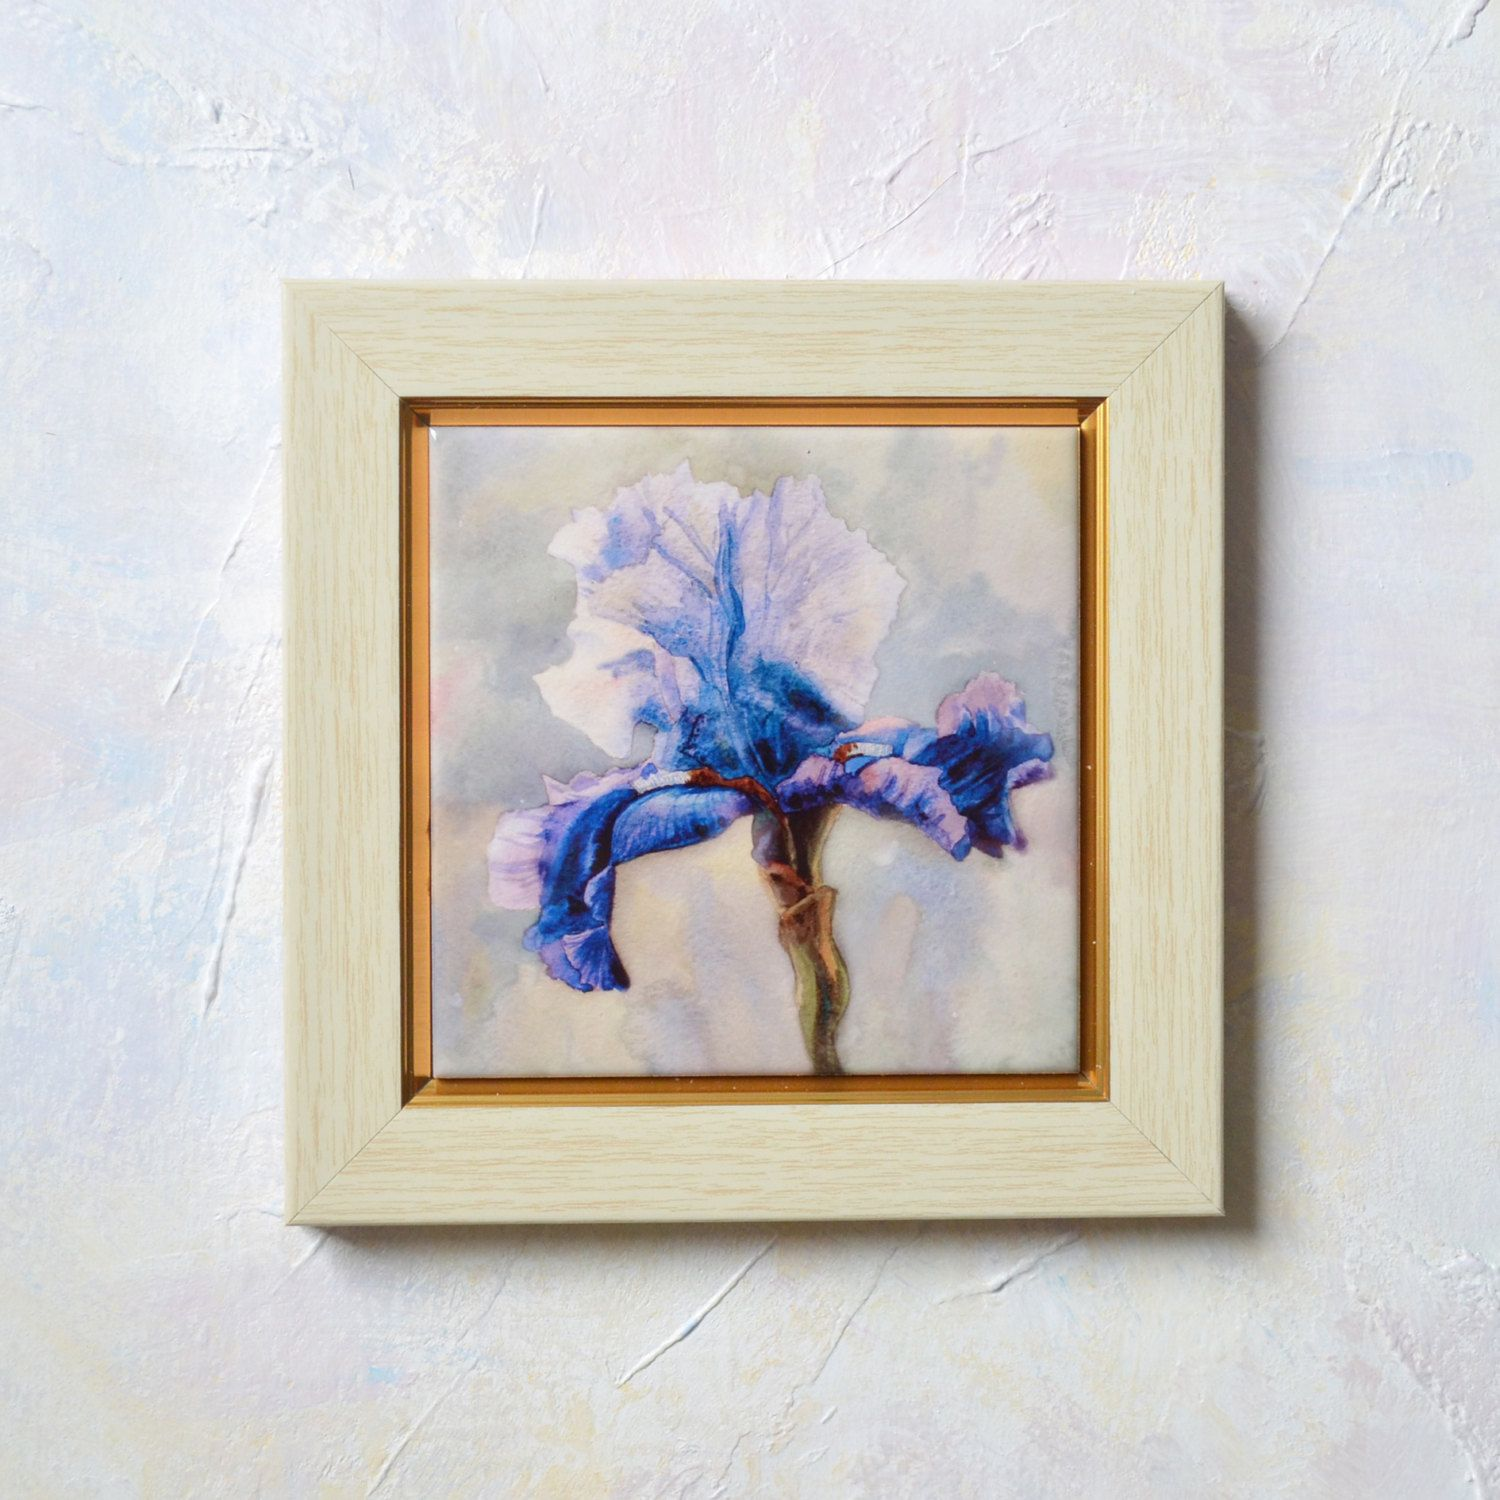 Blue iris hand painted ceramic tile wall art painting watercolor blue iris hand painted ceramic tile wall art painting watercolor home decor blue flower painting flower dailygadgetfo Images